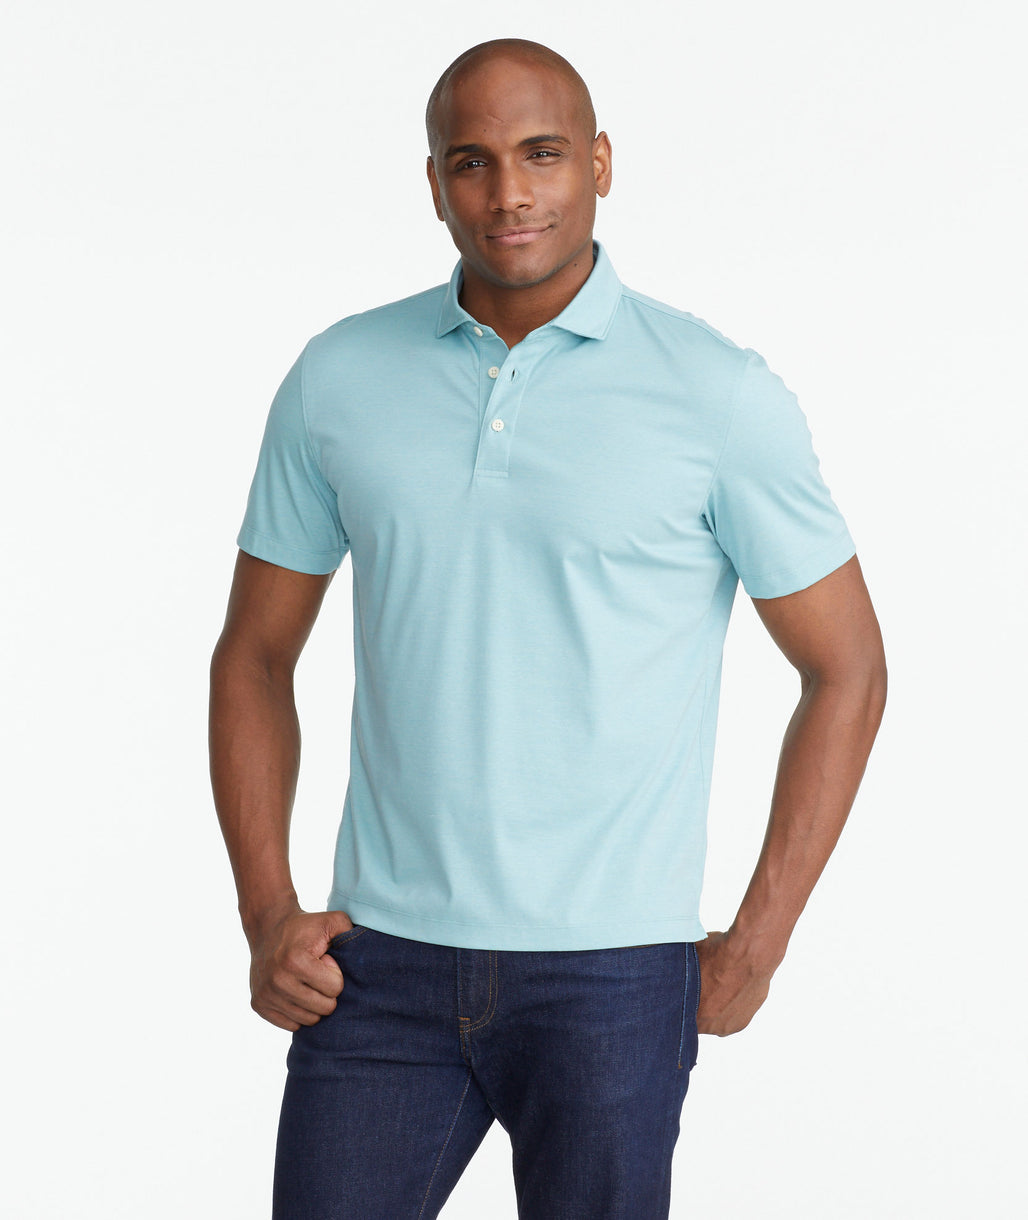 Model wearing a Green Luxe Wrinkle-Free Pique Polo